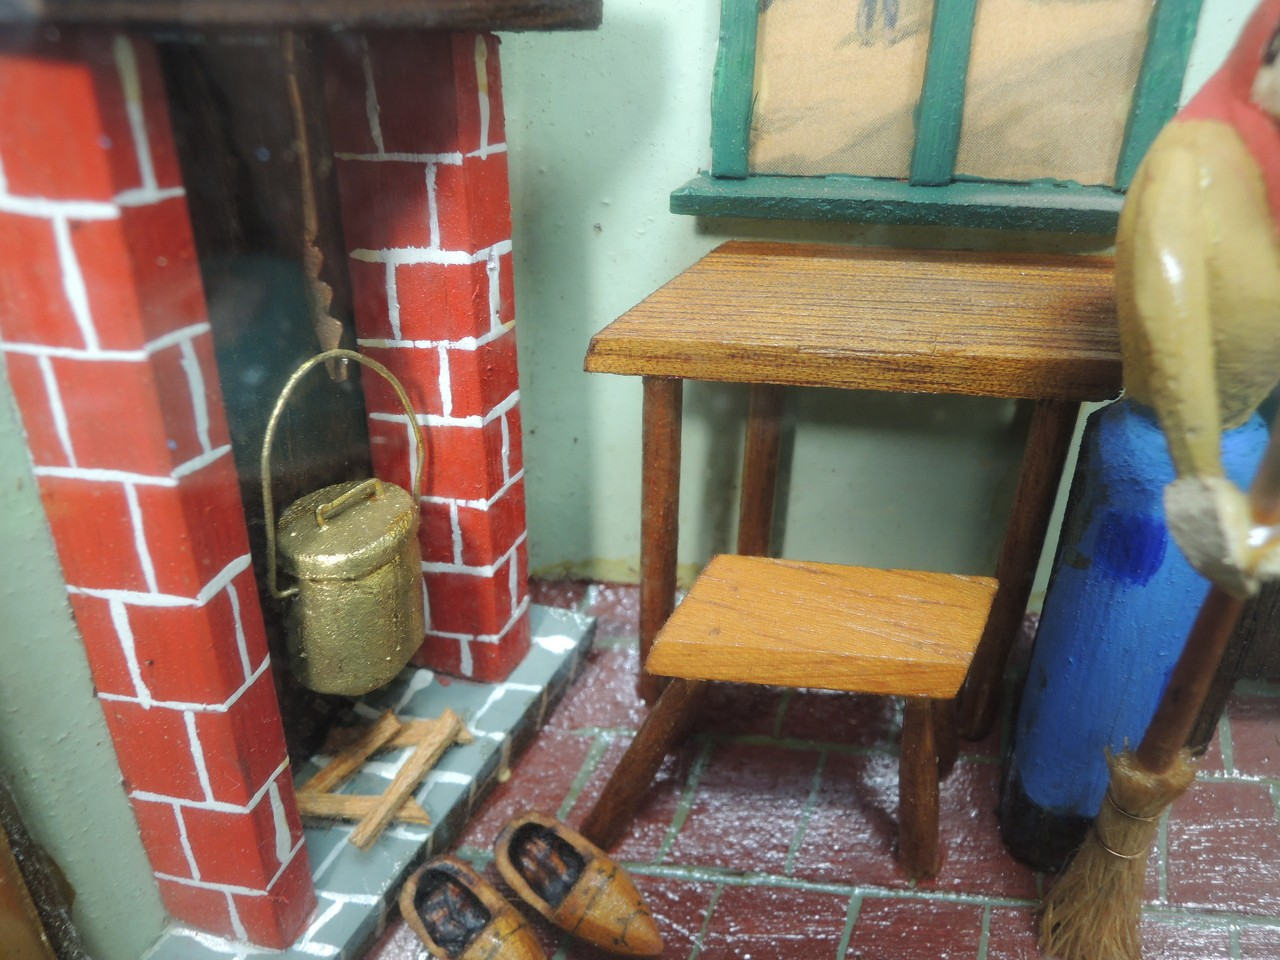 Miniature Children S Bedroom Room Box Diorama: DOLLHOUSE MINIATURE ROOM BOX DIORAMA HANDMADE FOLK ART